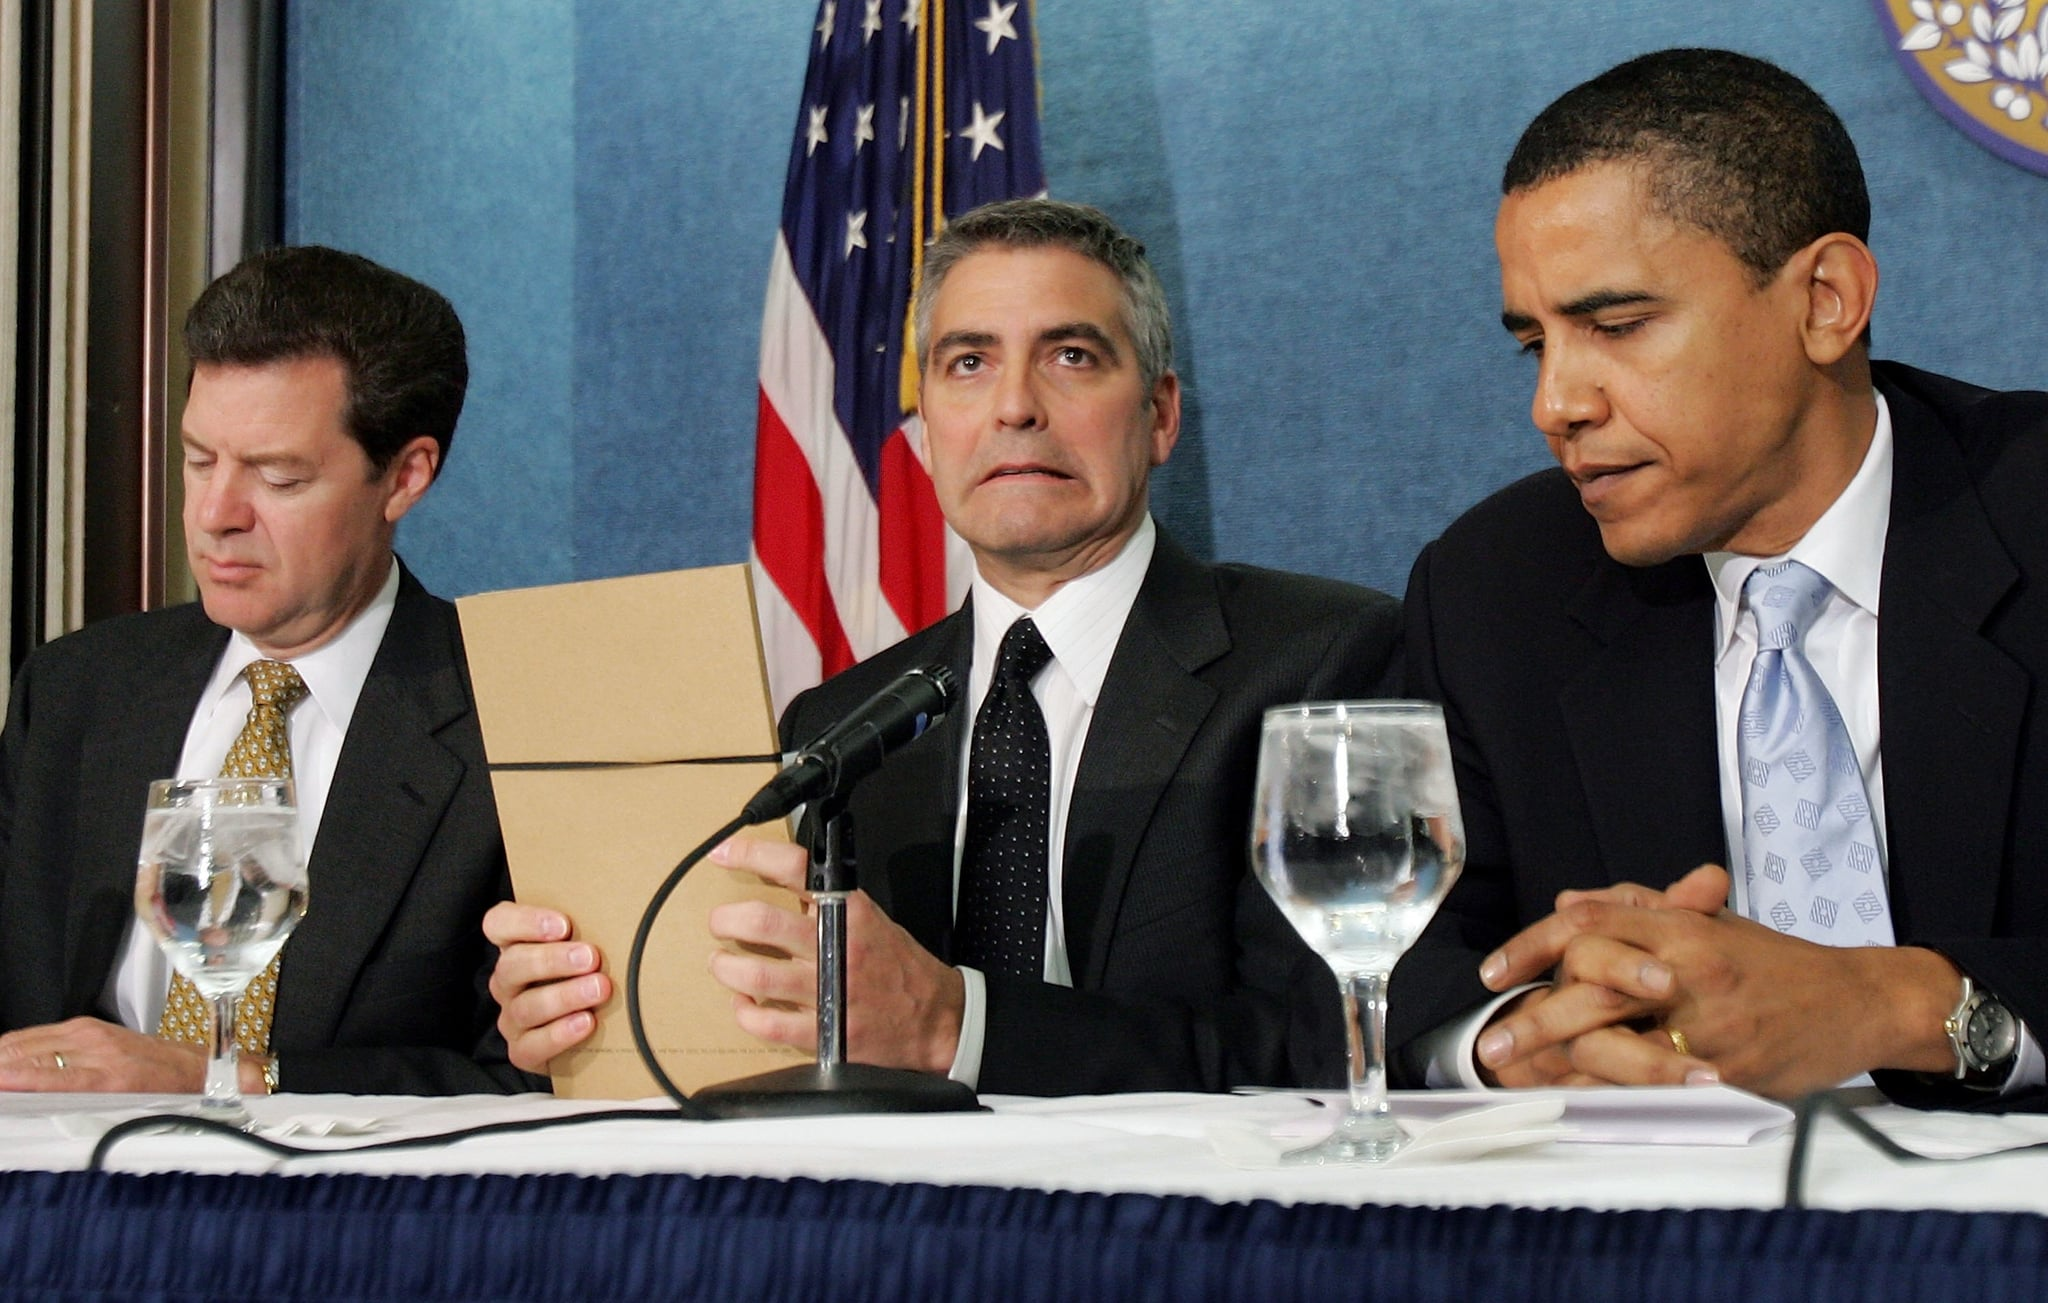 George Clooney Running for President Rumors and Real Truth